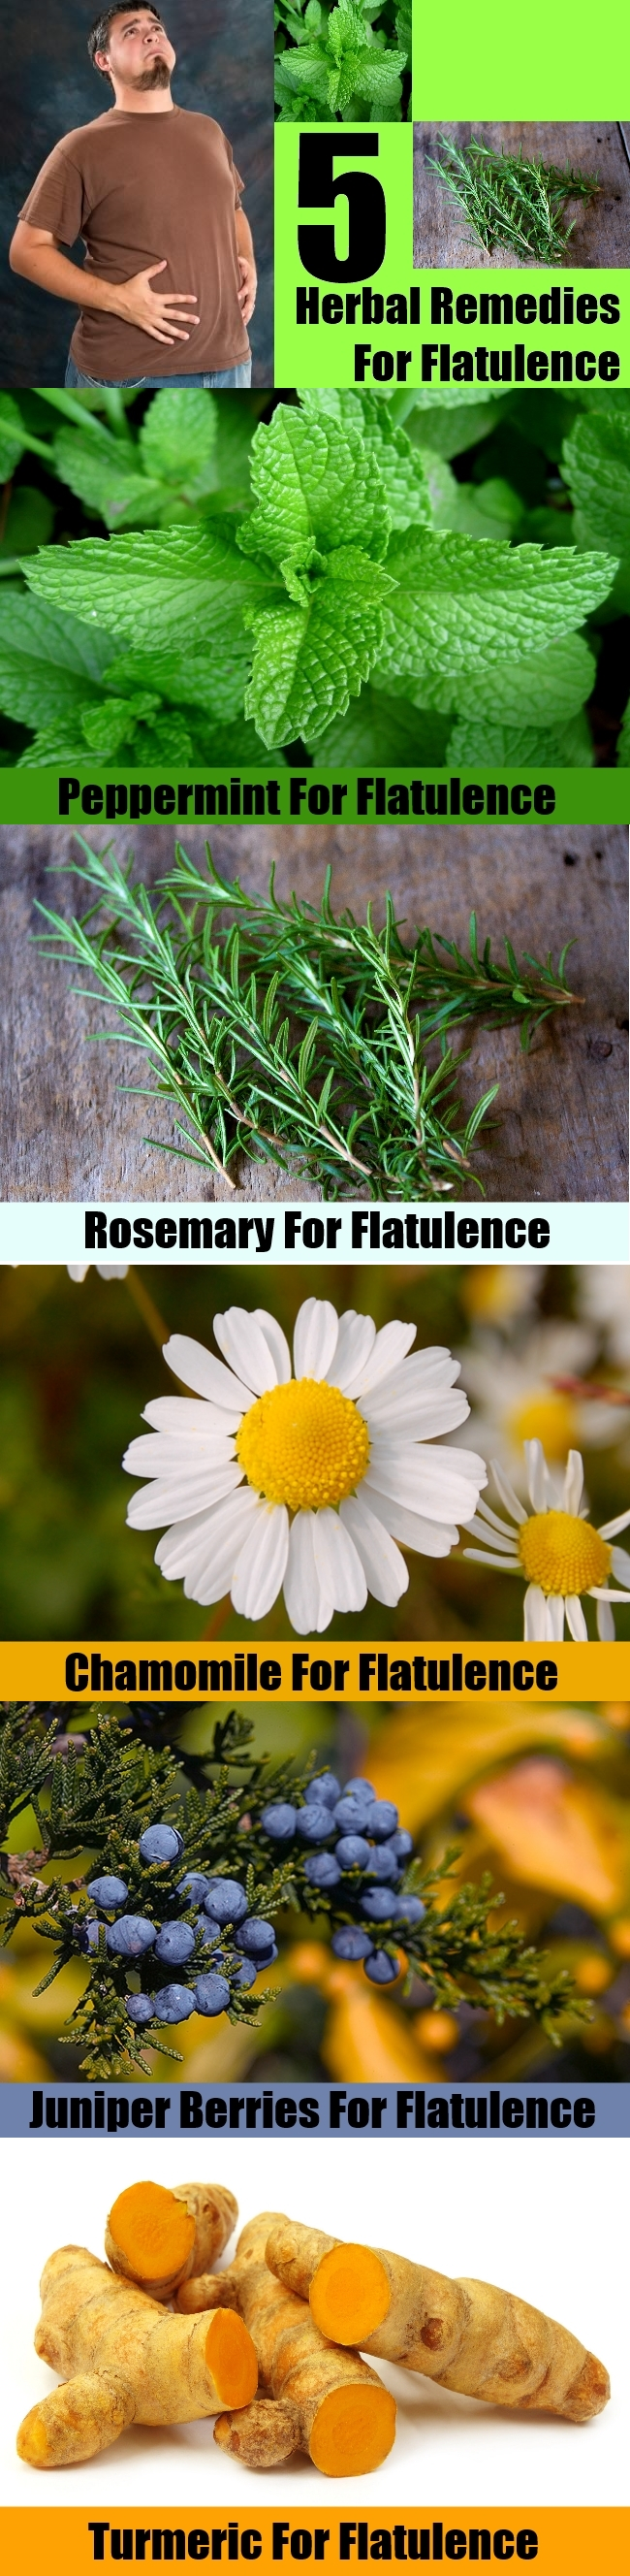 5 Best Herbal Remedies For Flatulence